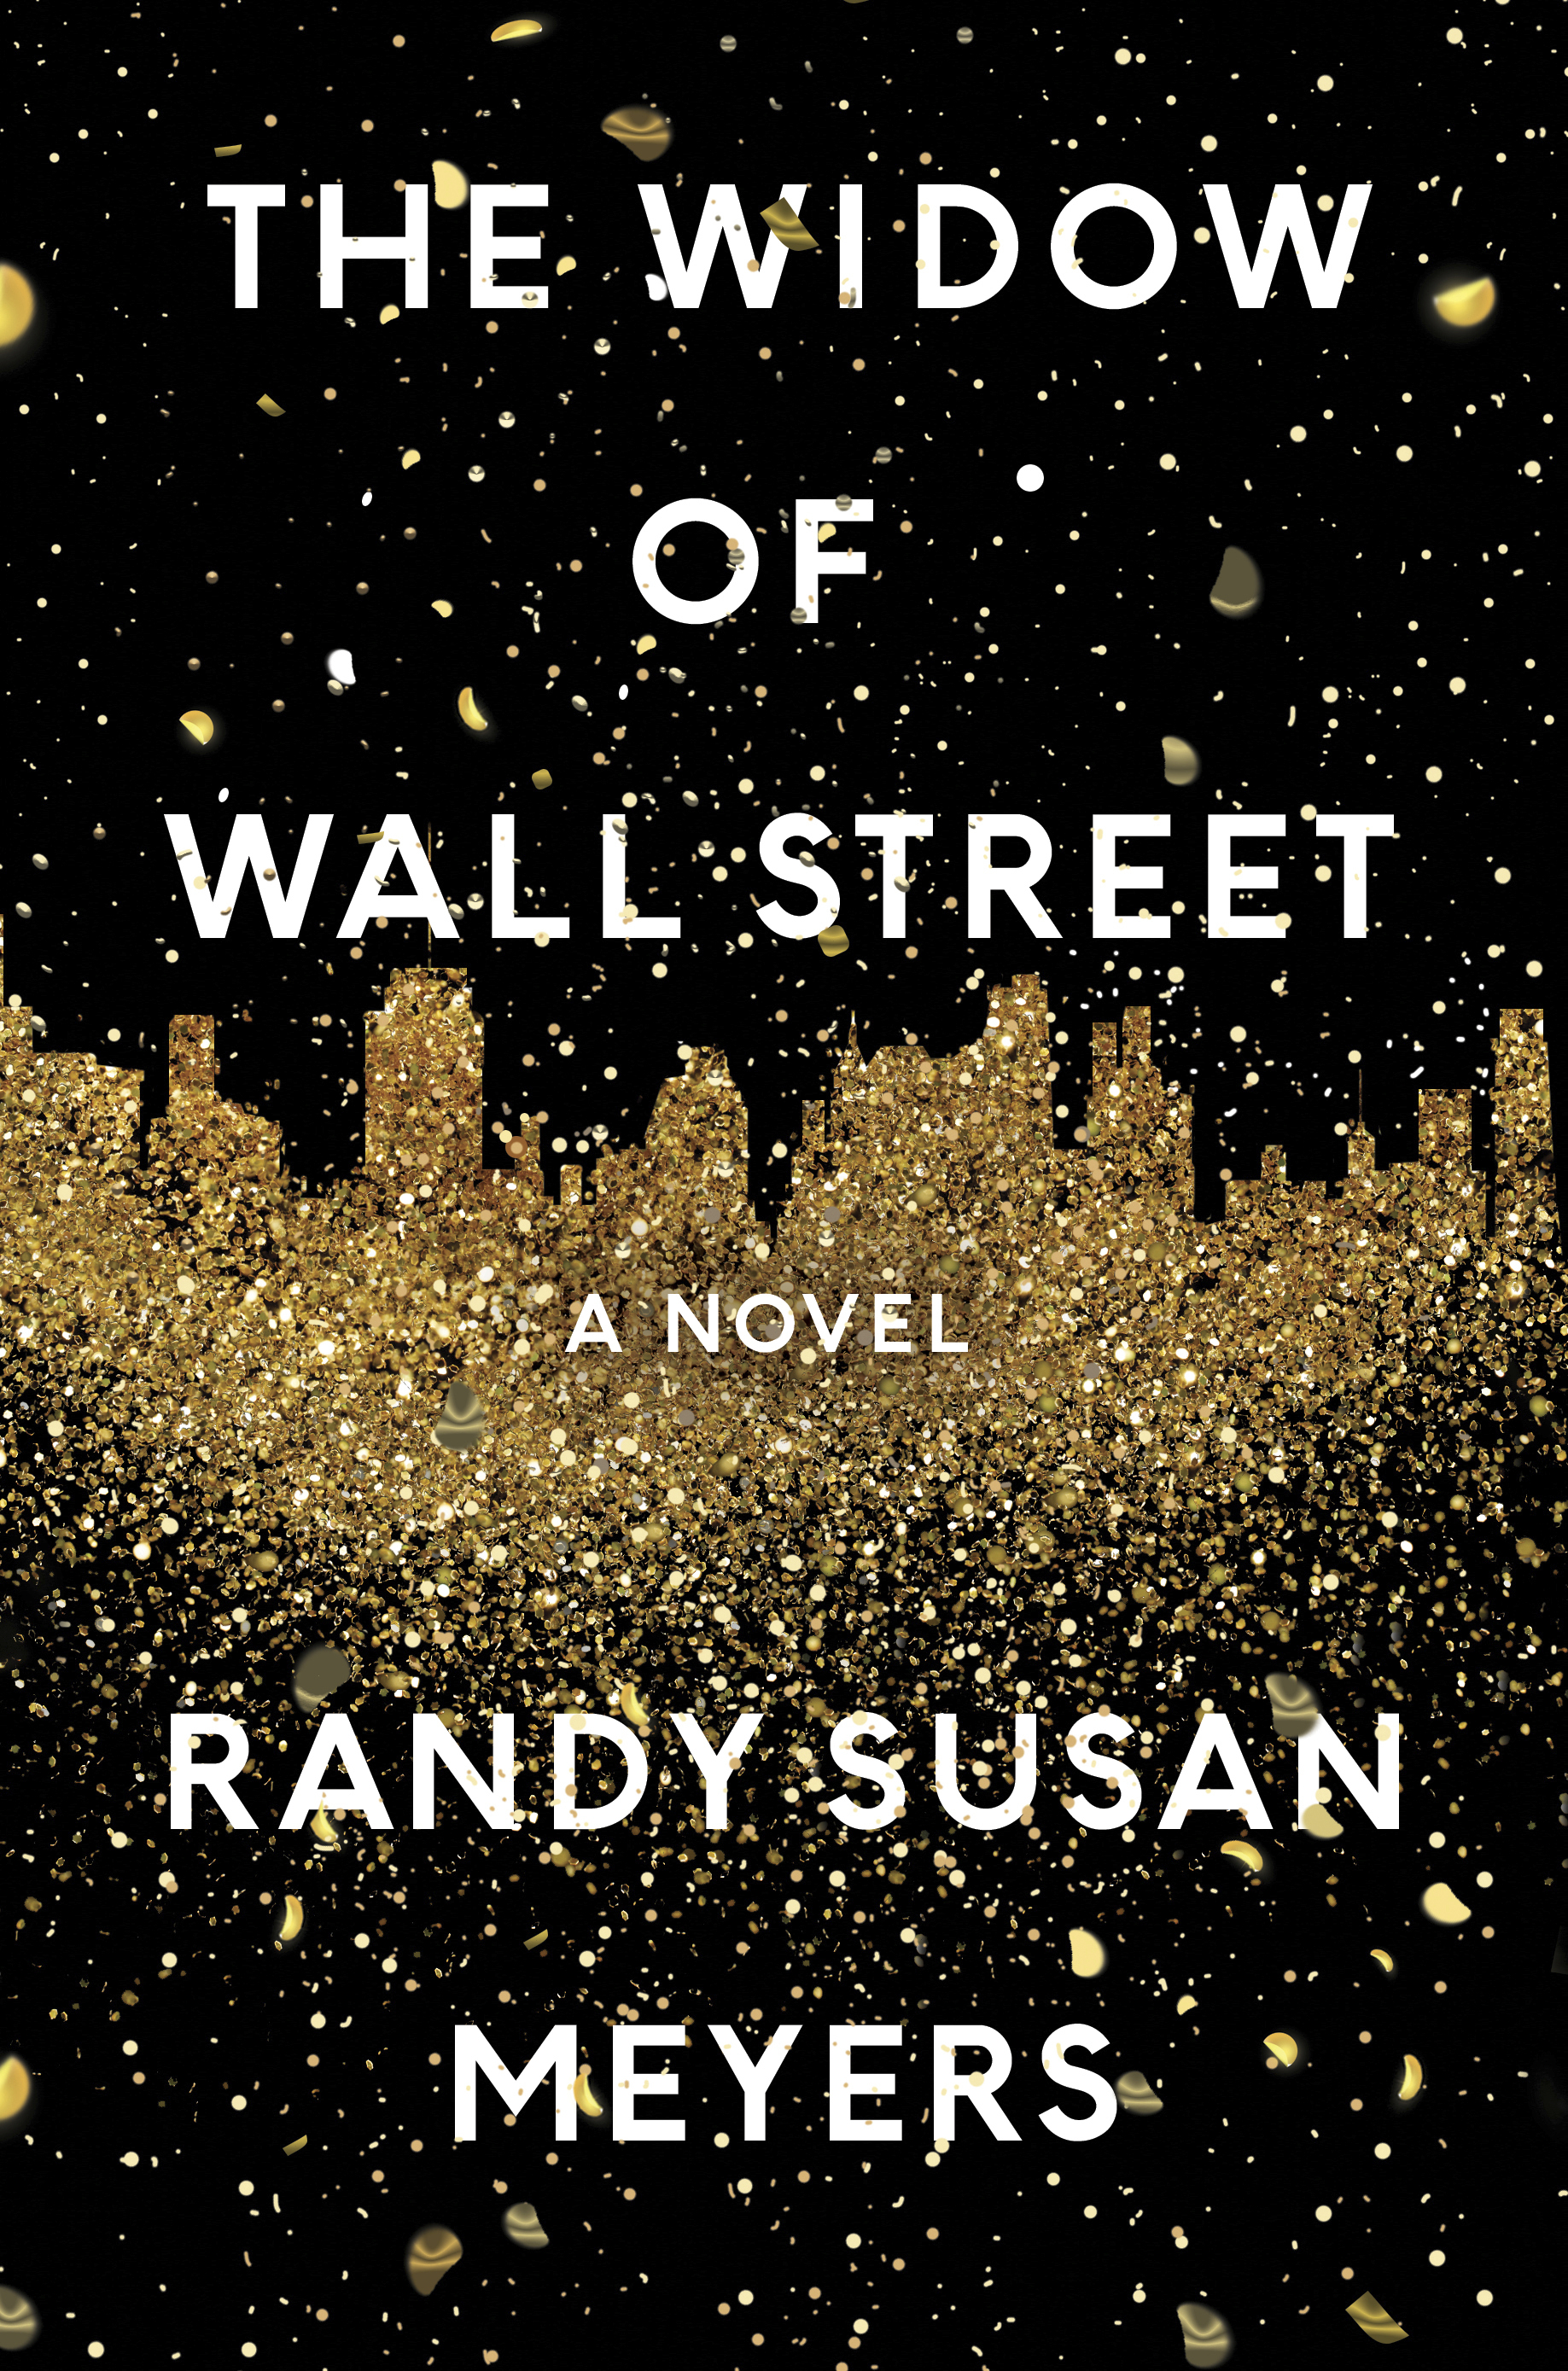 Book Review The Widow of Wall Street